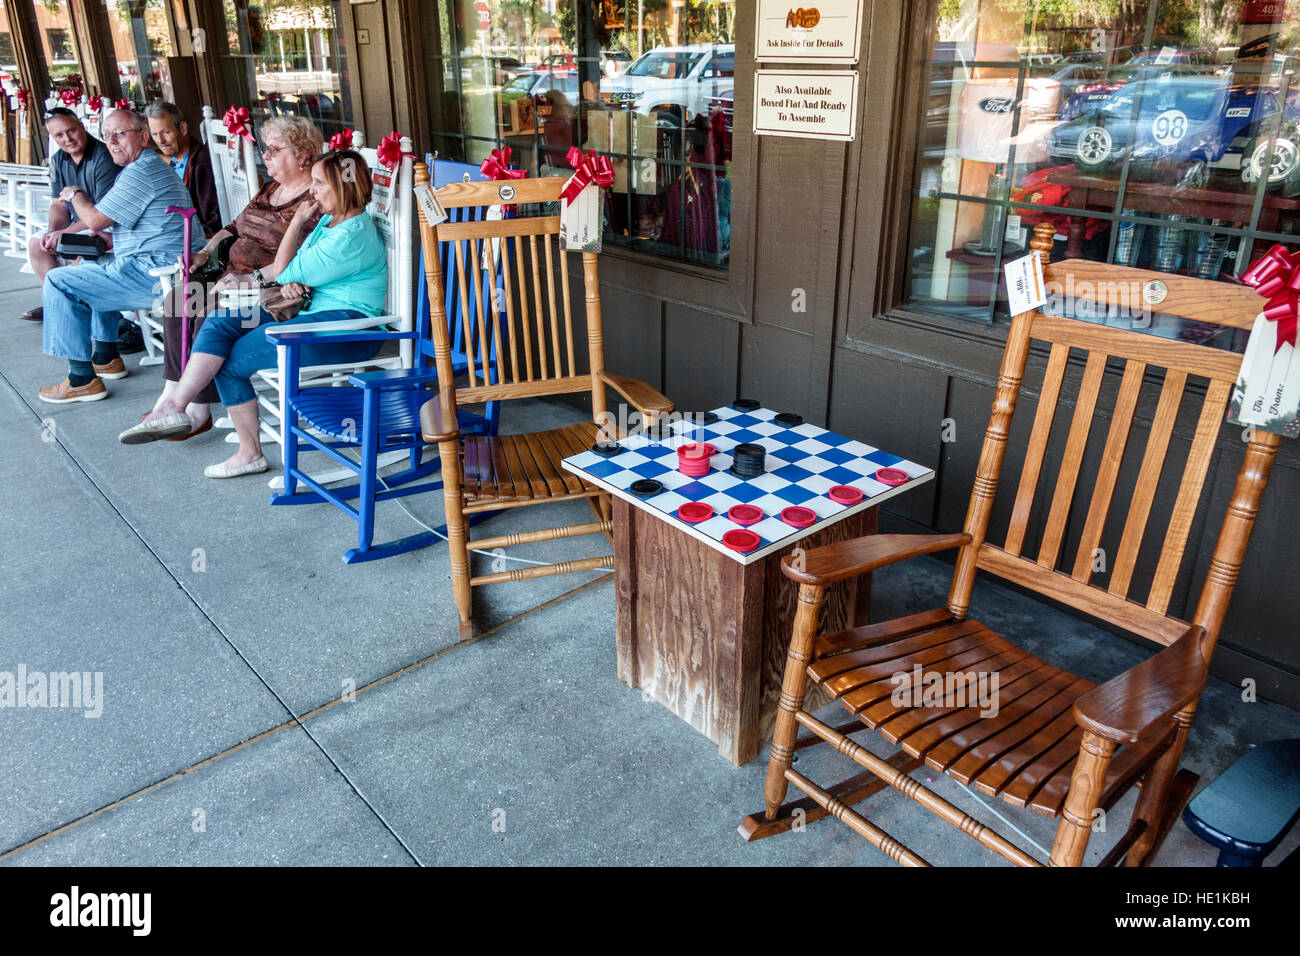 https www alamy com stock photo florida south port charlotte cracker barrel old country store restaurant 129114933 html